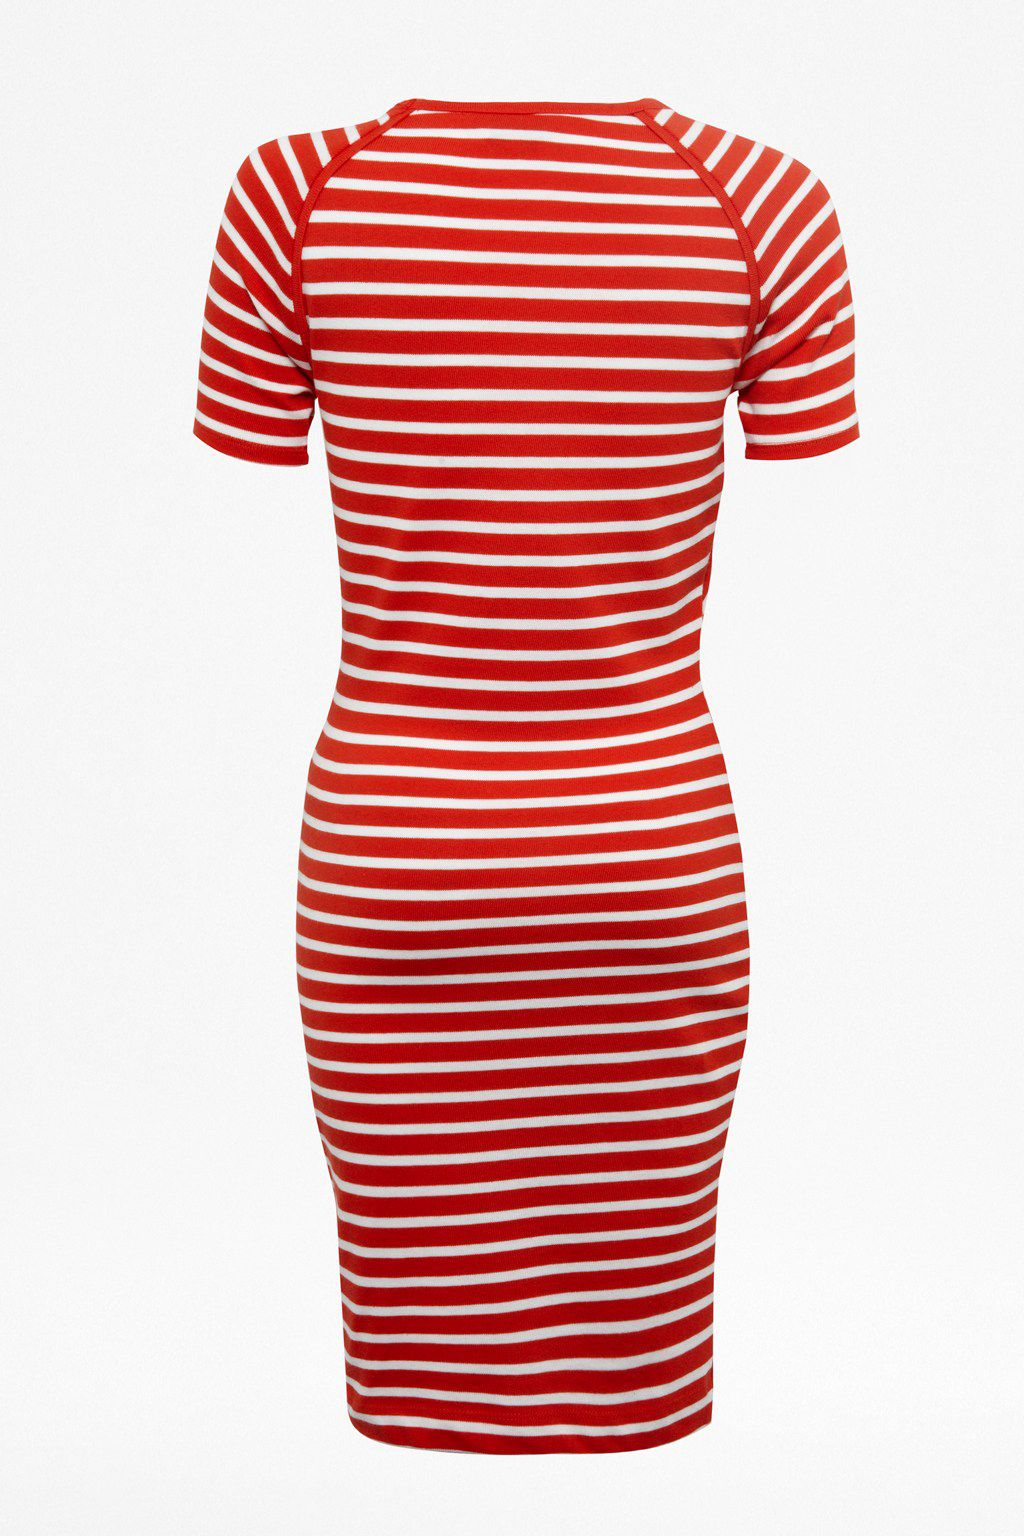 County cotton stripe round neck dress